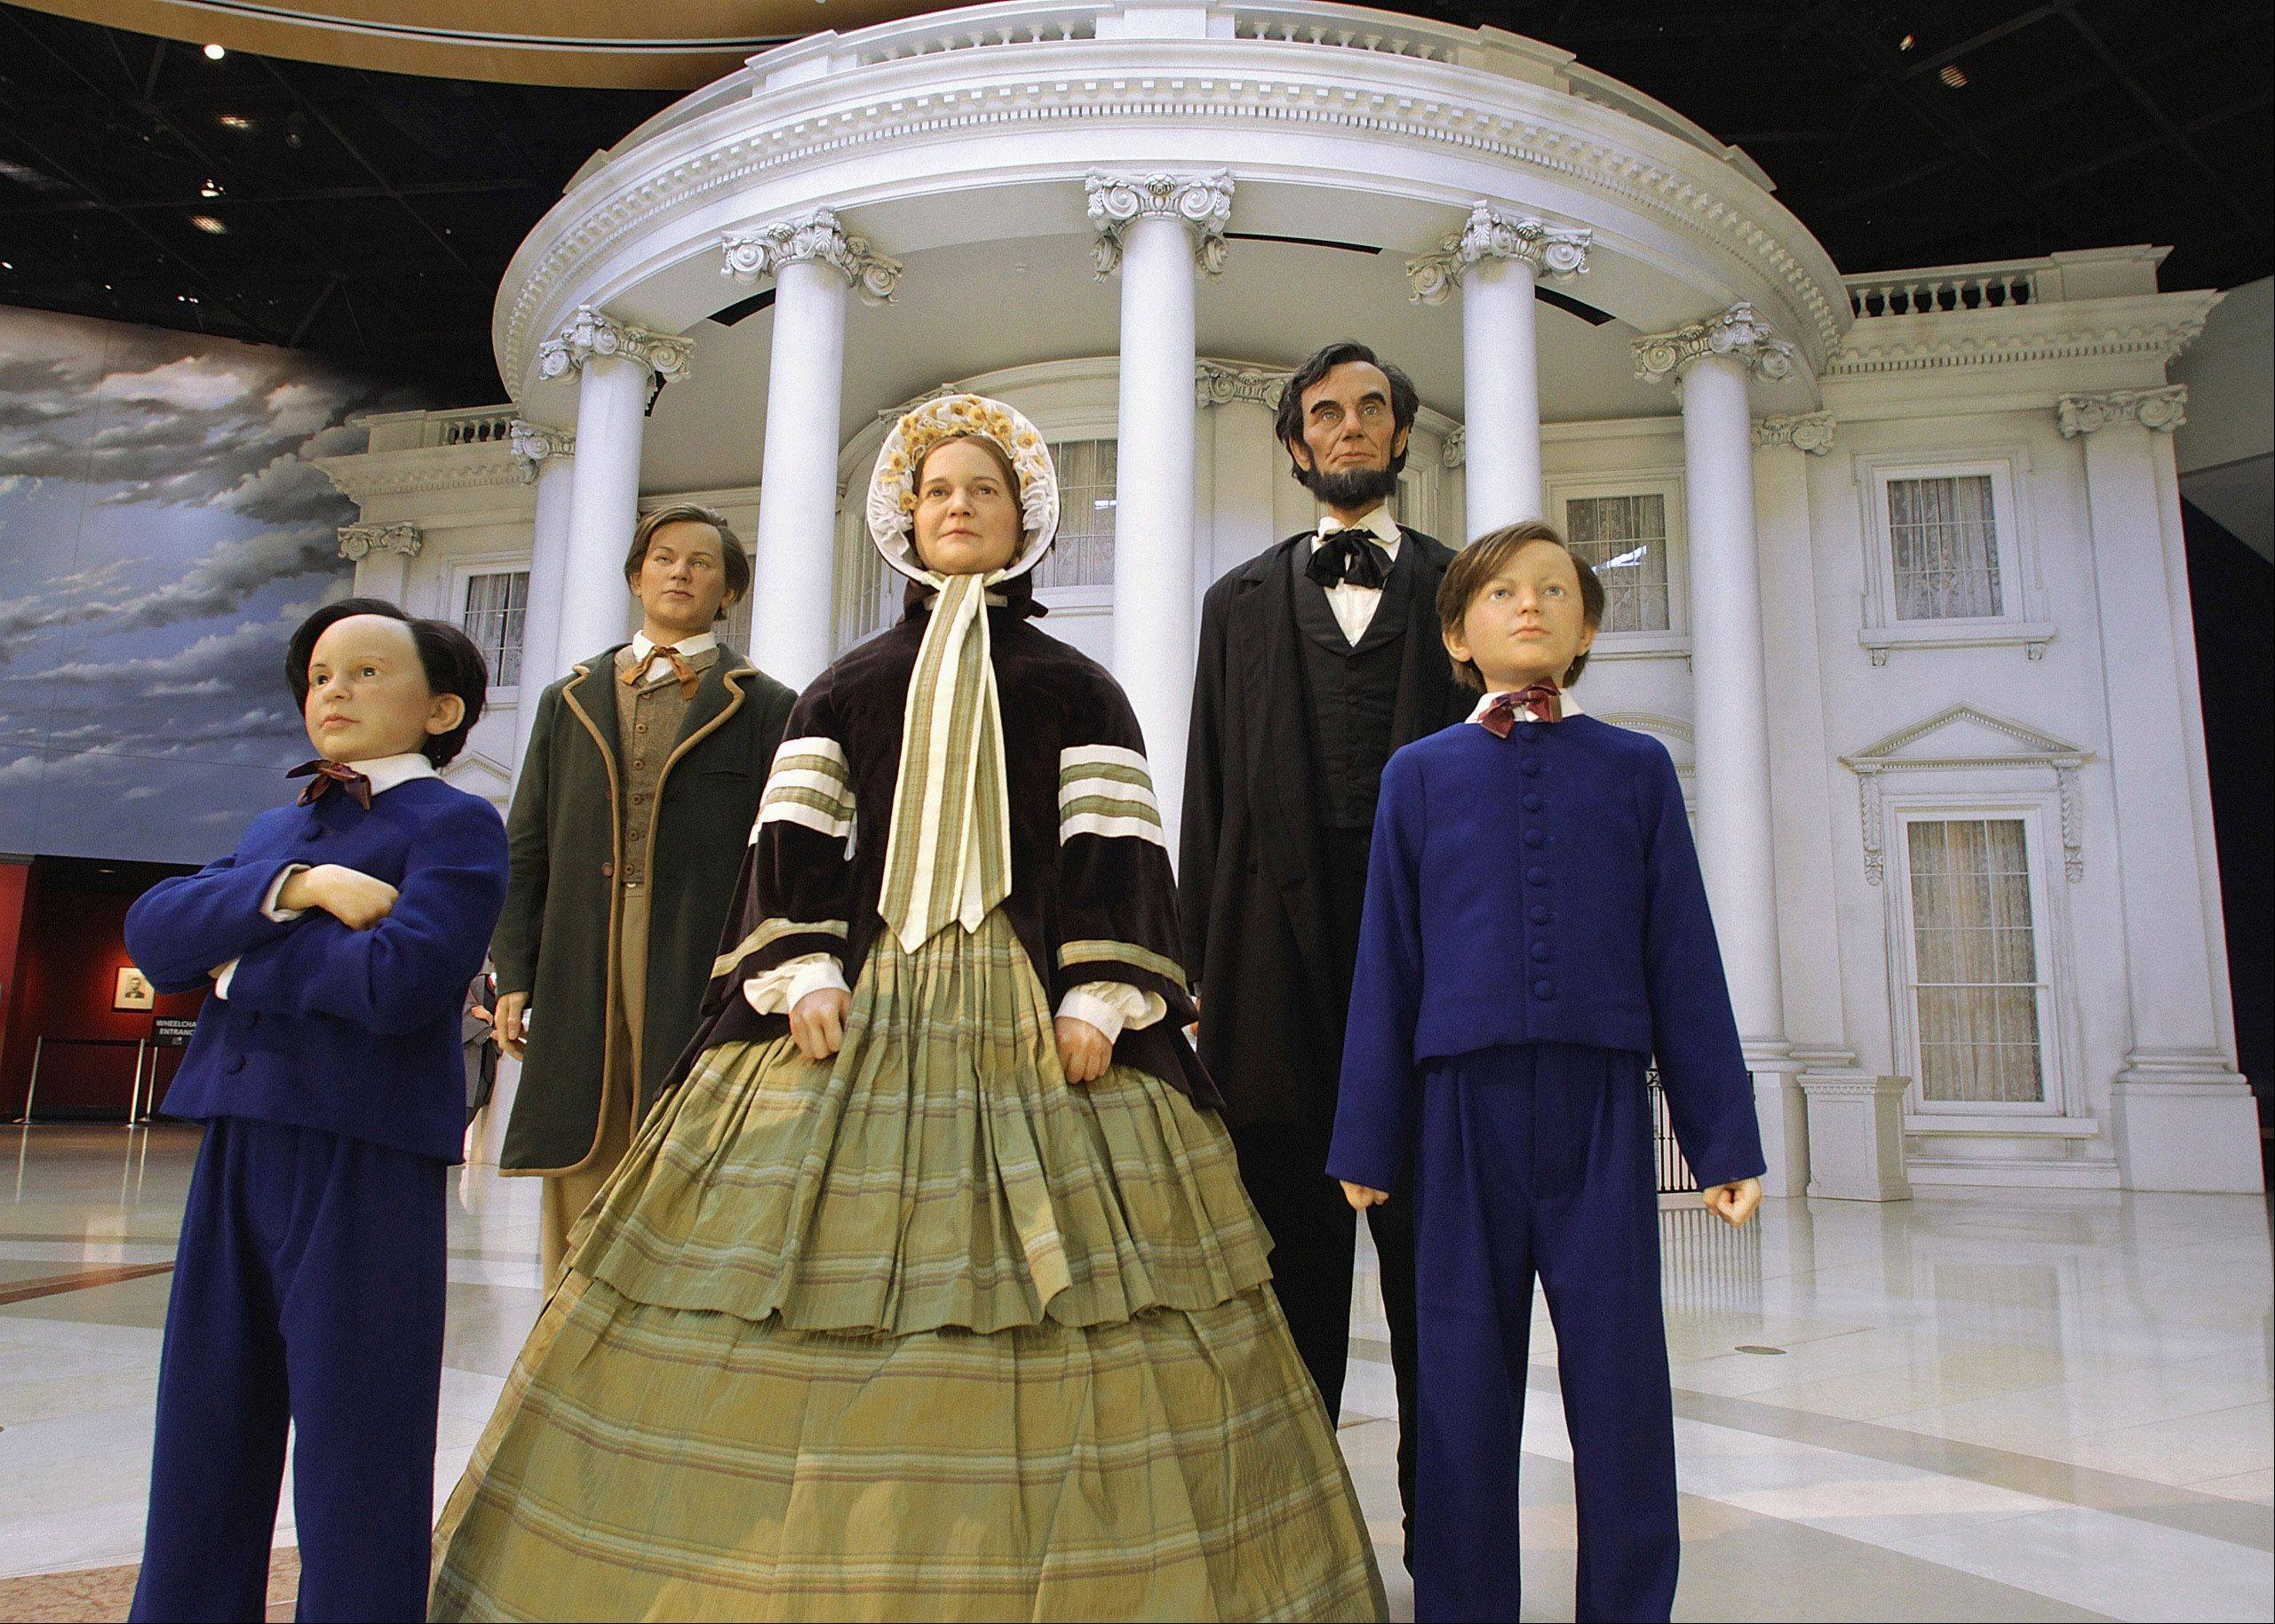 Life-like models of Abraham and Mary Lincoln, with their sons, Willie, Tad and Robert, pose in front of the 1861 White House facade in the central plaza area of the Abraham Lincoln Presidential Museum in Springfield, Ill.